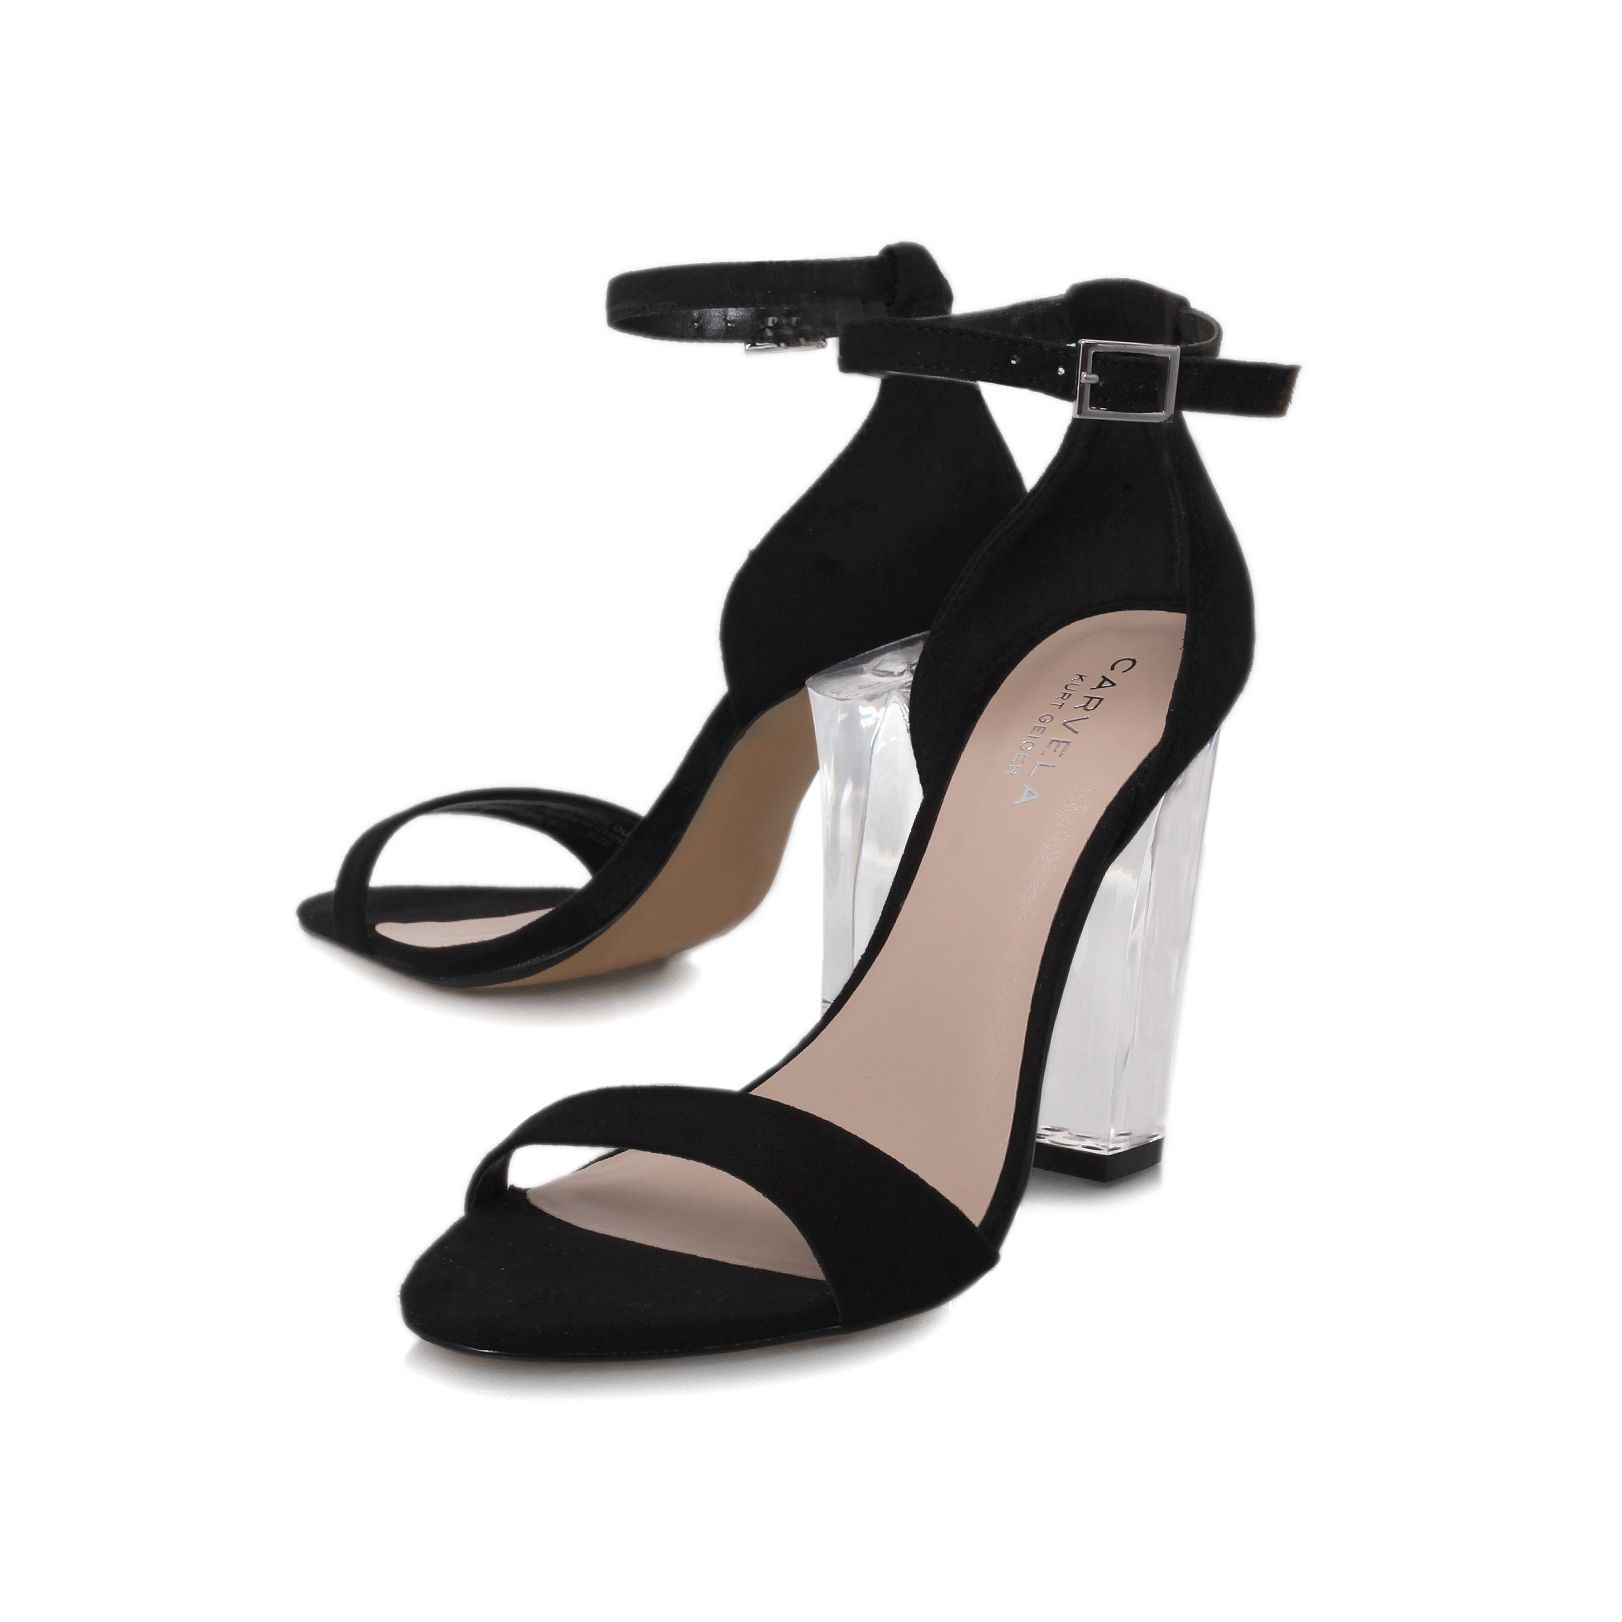 Gravity high heel sandals